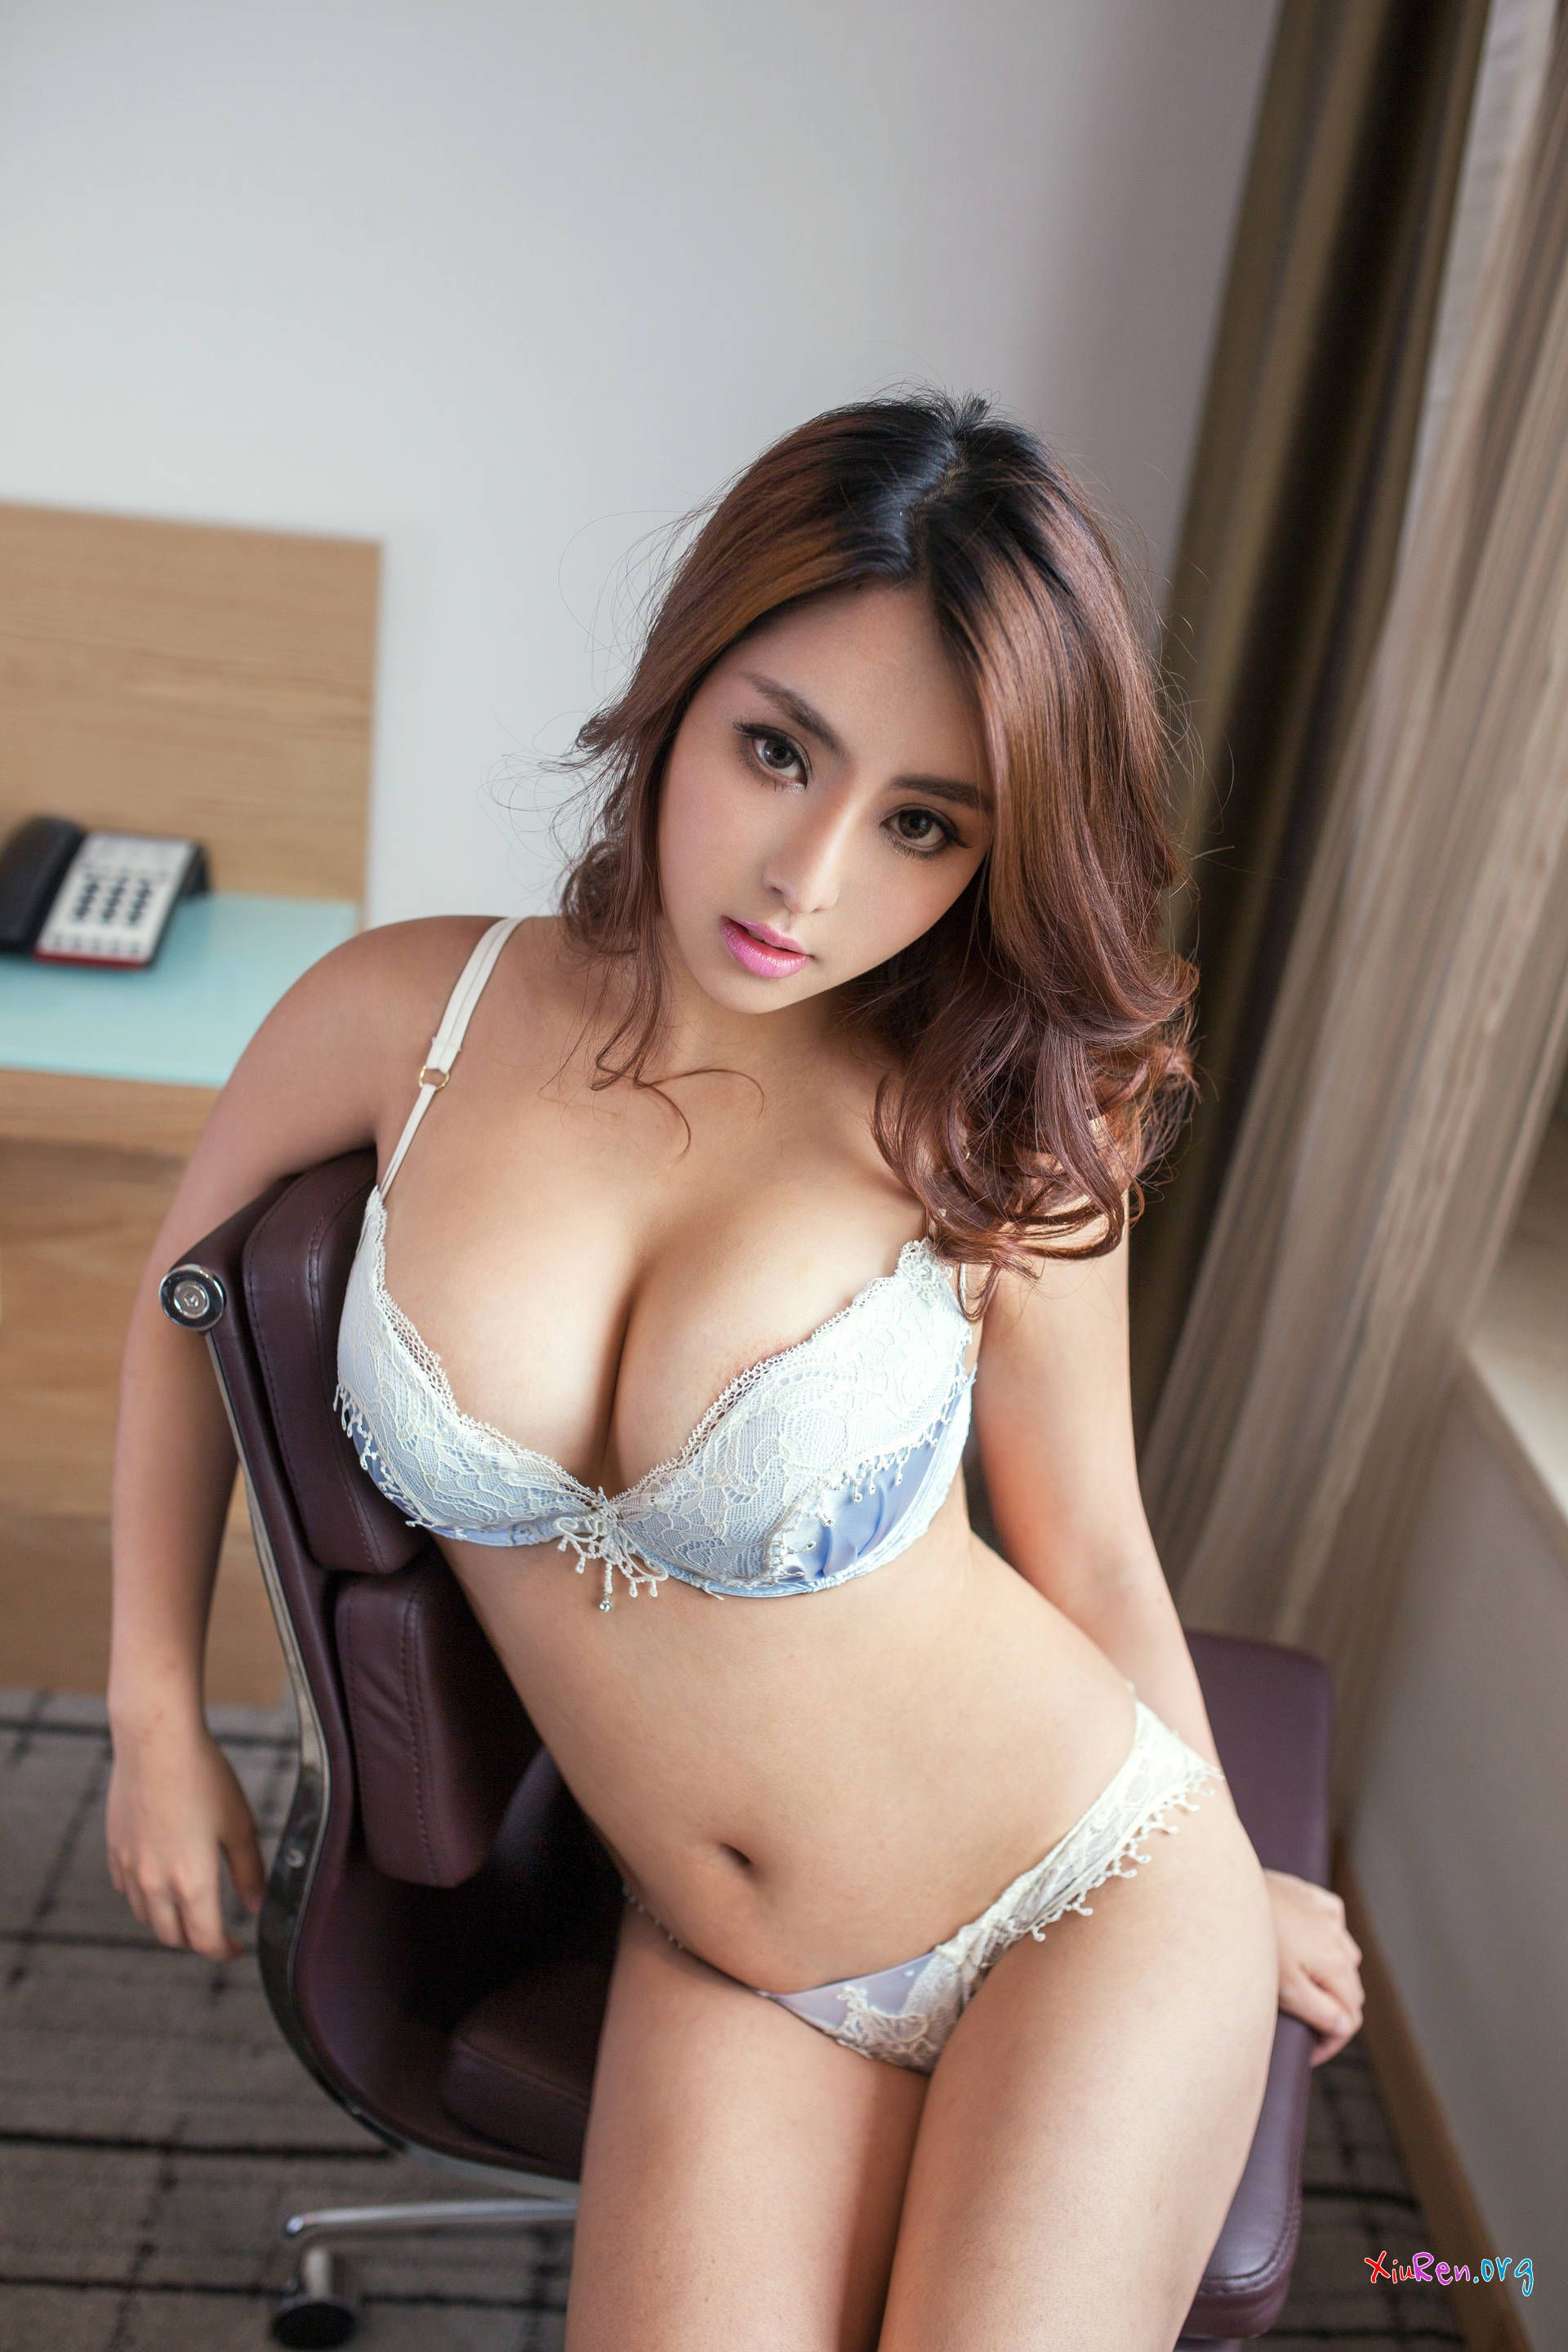 korean escort ottawa clara escort